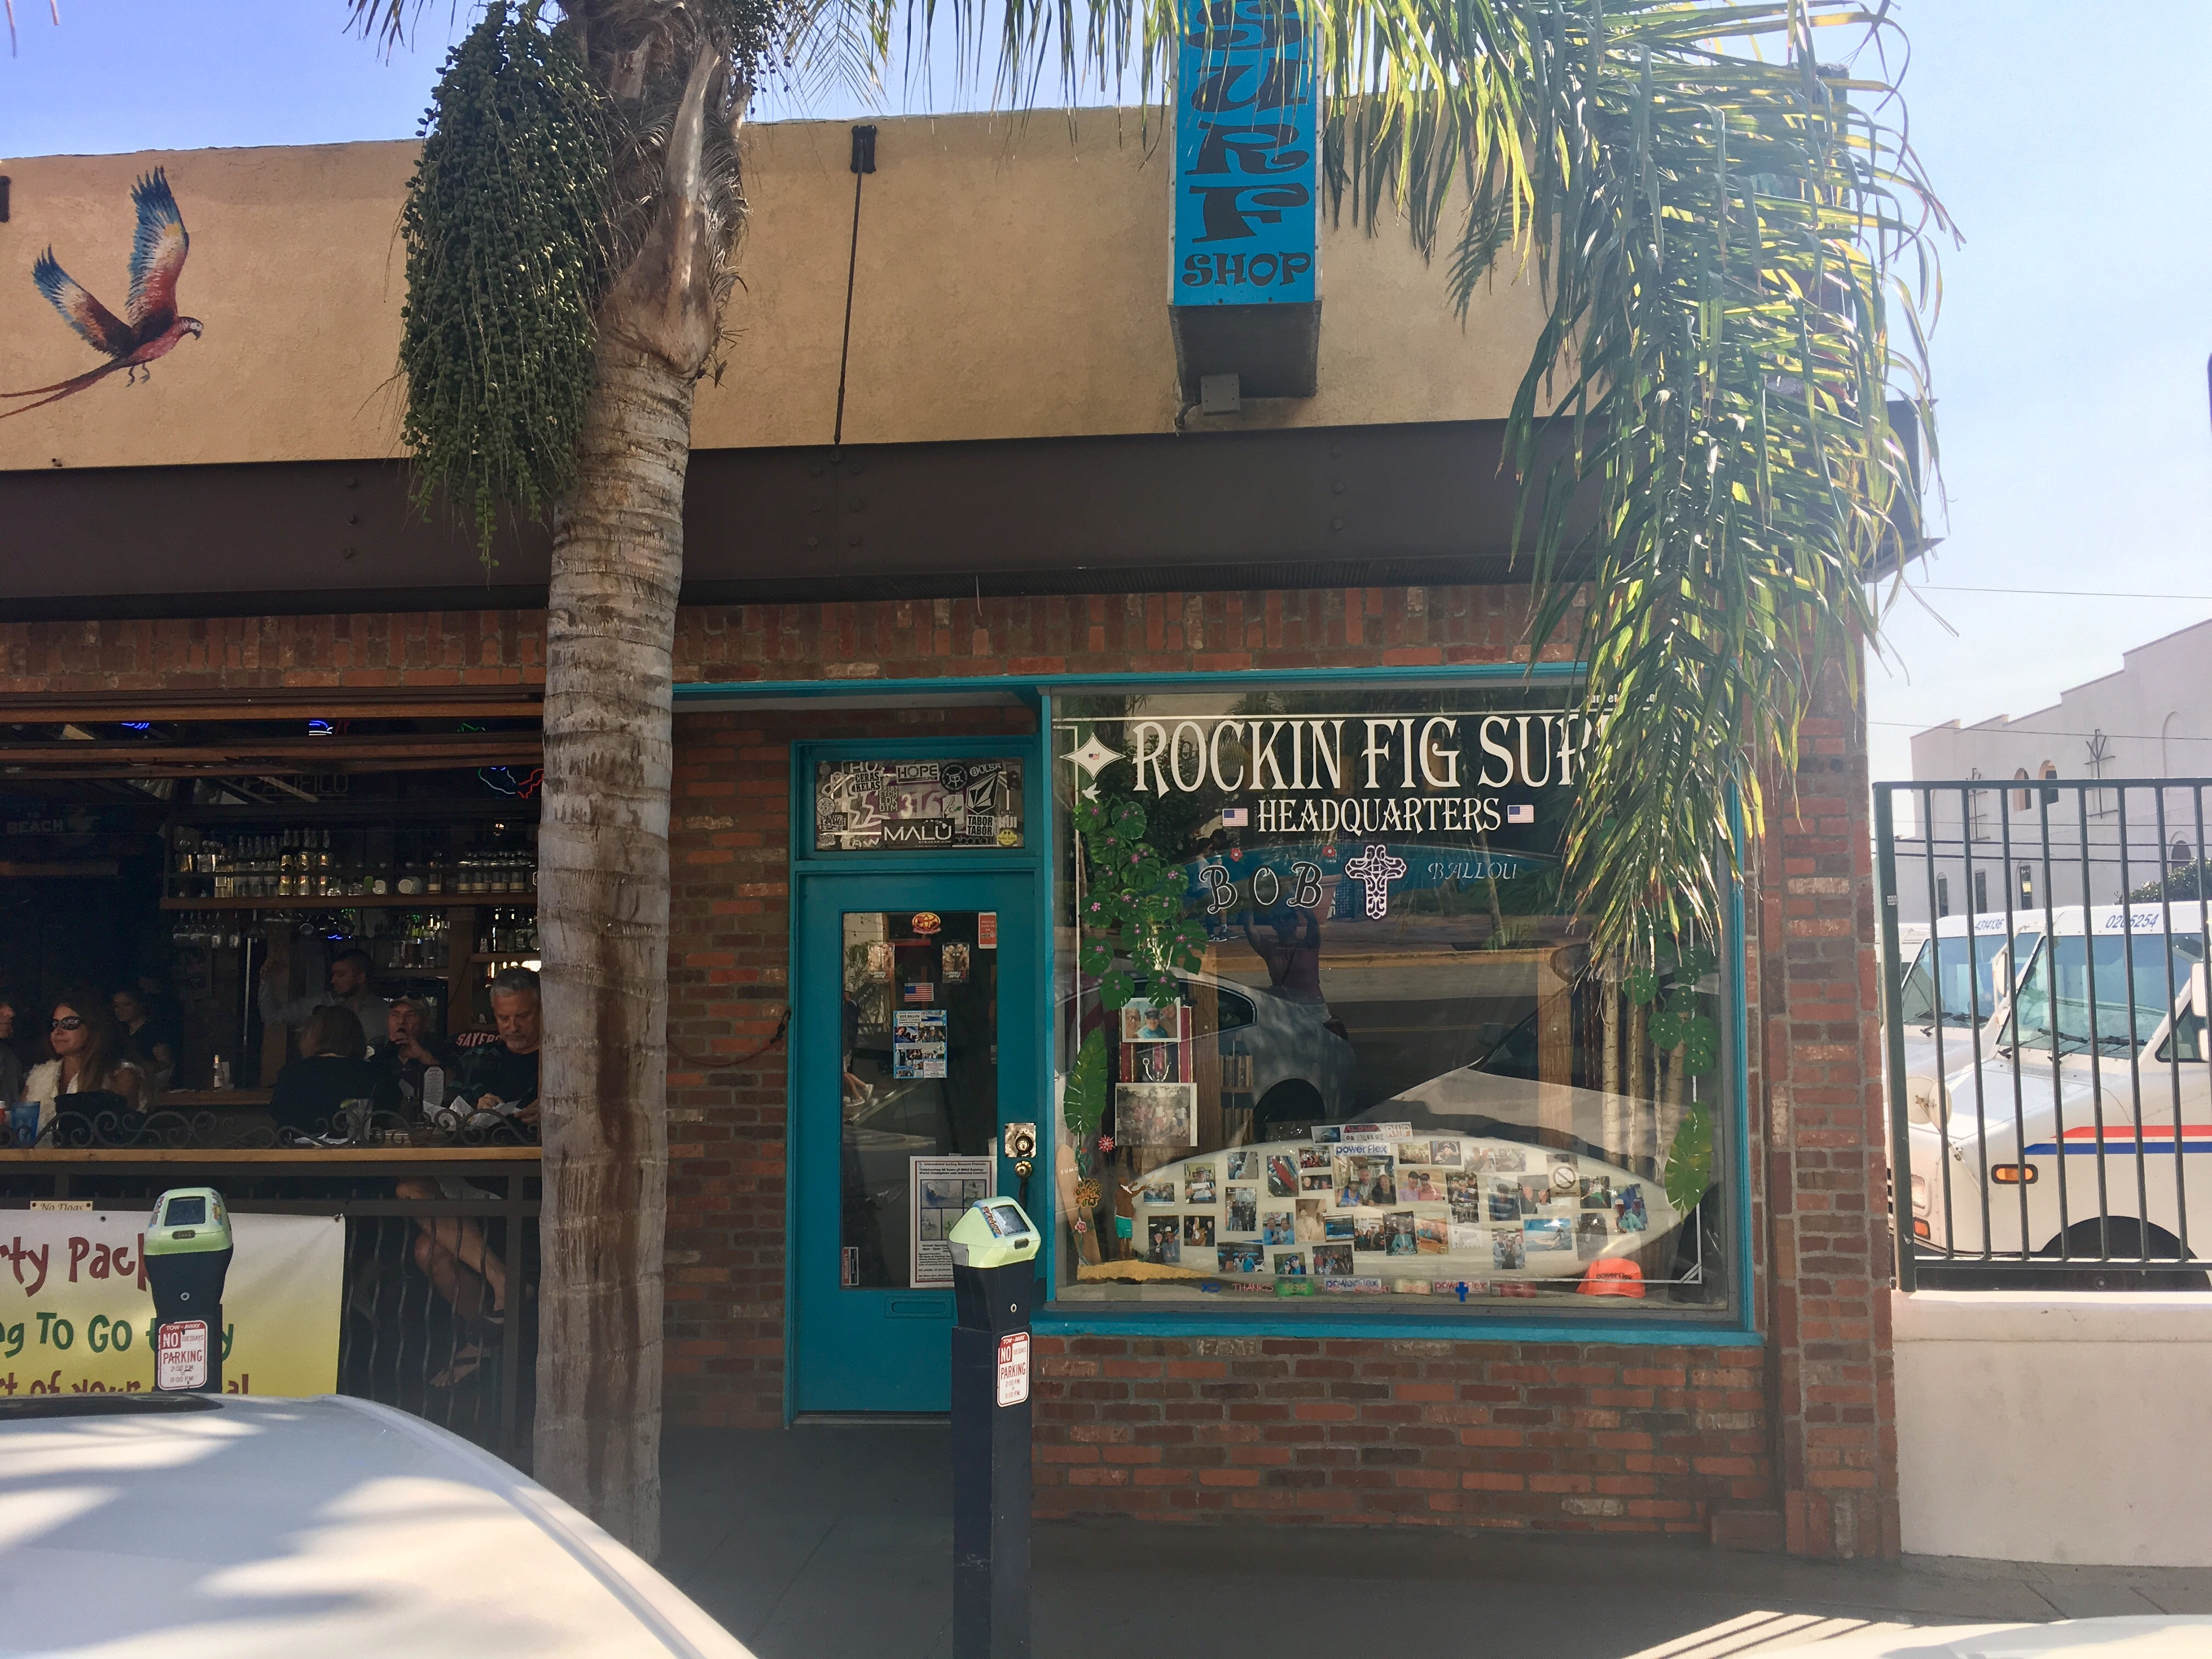 Huntington Beach's Rockin Fig surf shop is keeping the